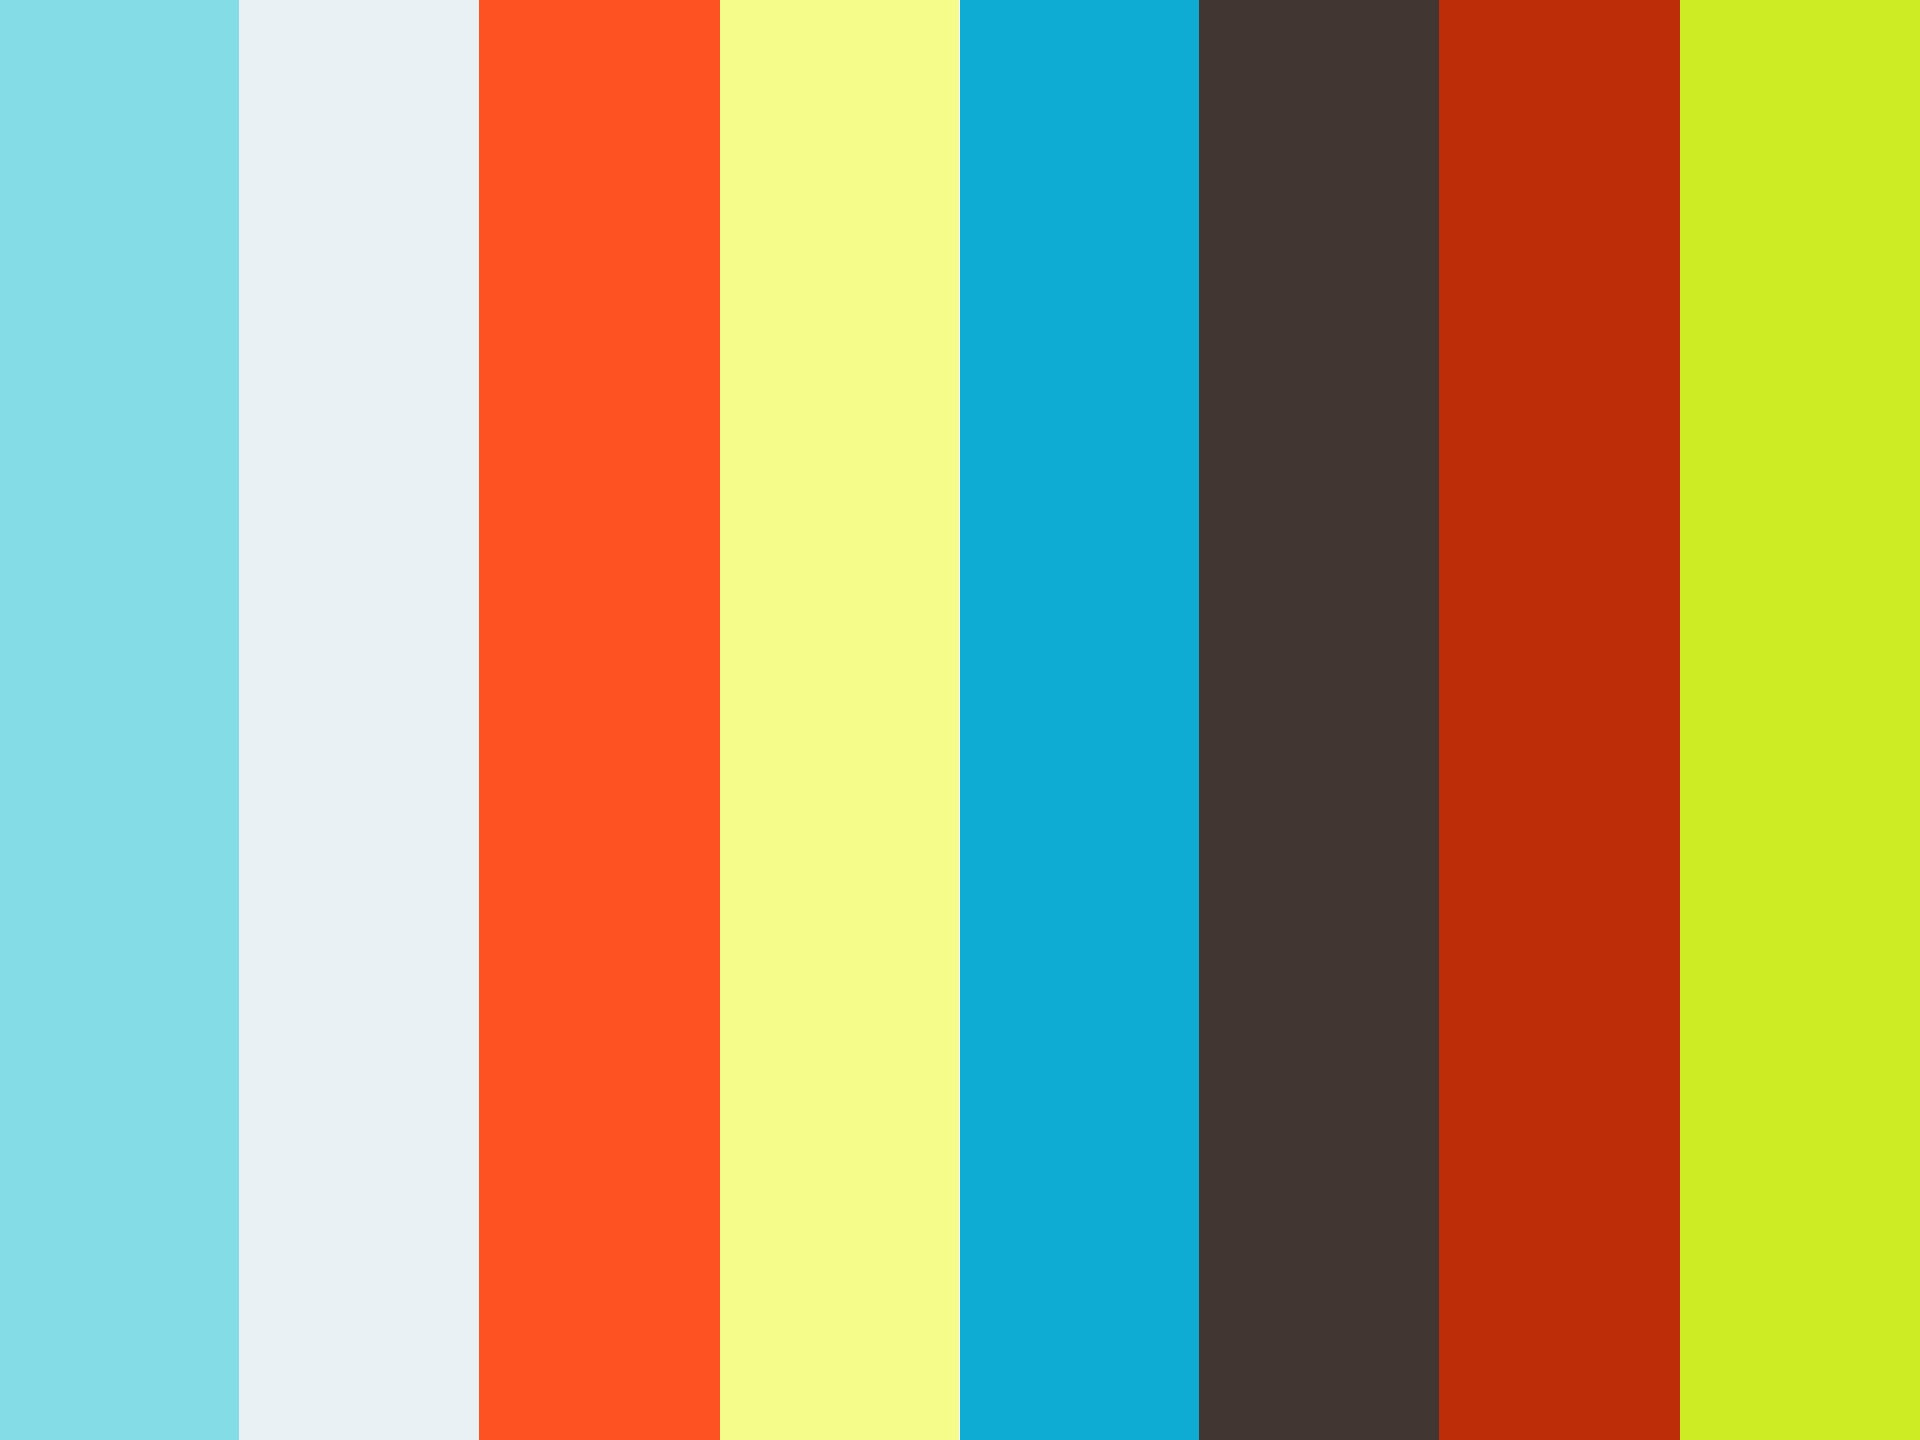 In Vivo and In Vitro Efficacy of Dual PI3K/mTOR Inhibition in Novel Murine Models of Anal Cancer 2017